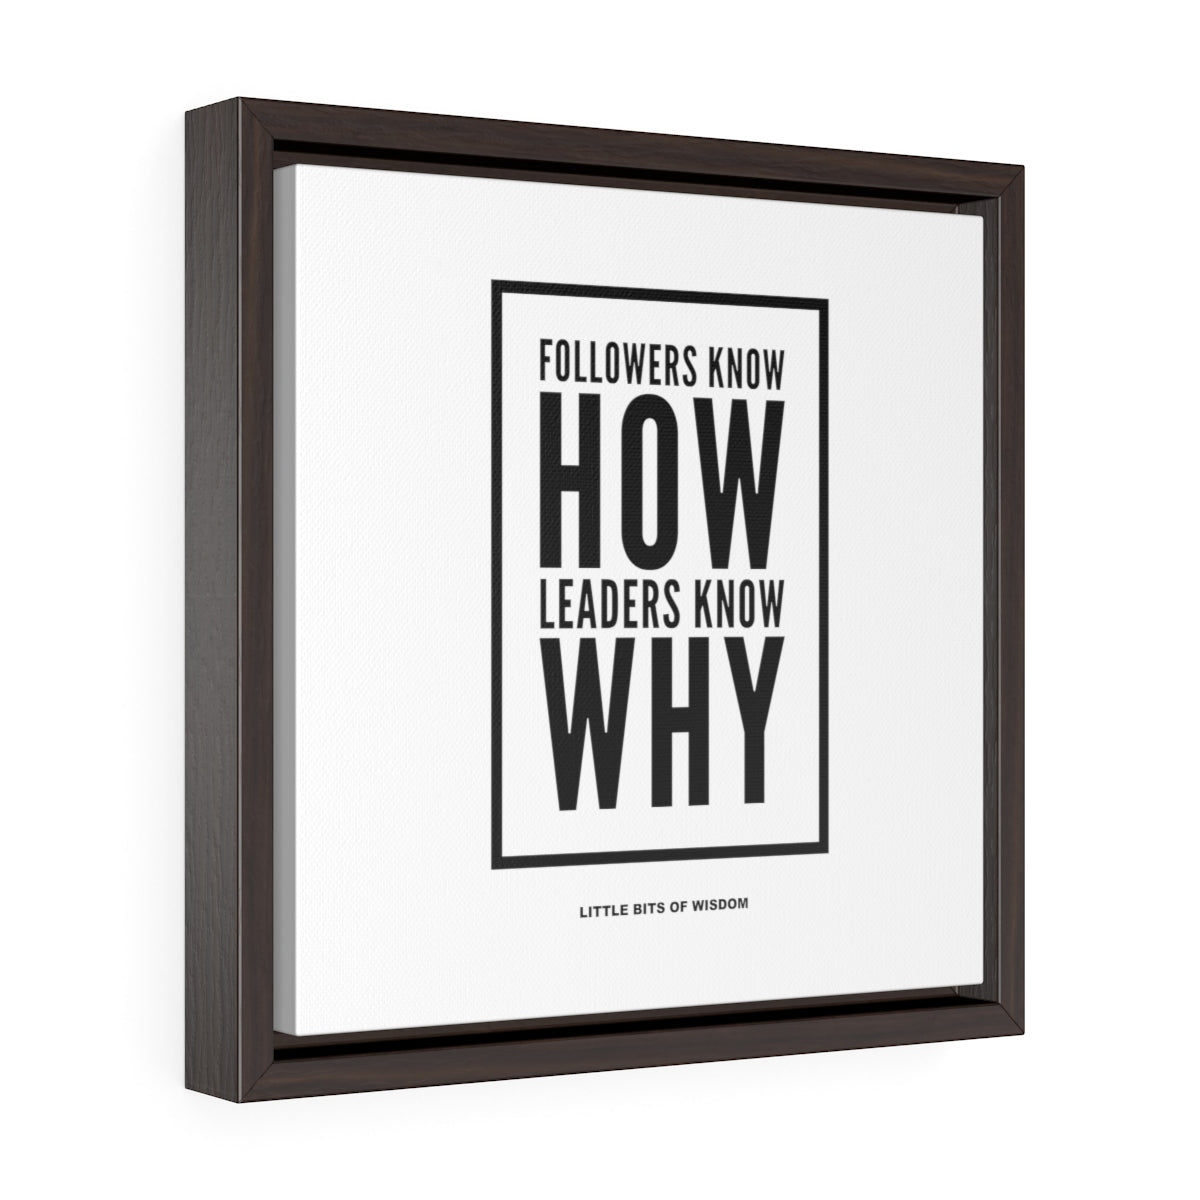 Followers Know How. Leaders Know Why. Square Framed Premium Gallery Wrap Canvas